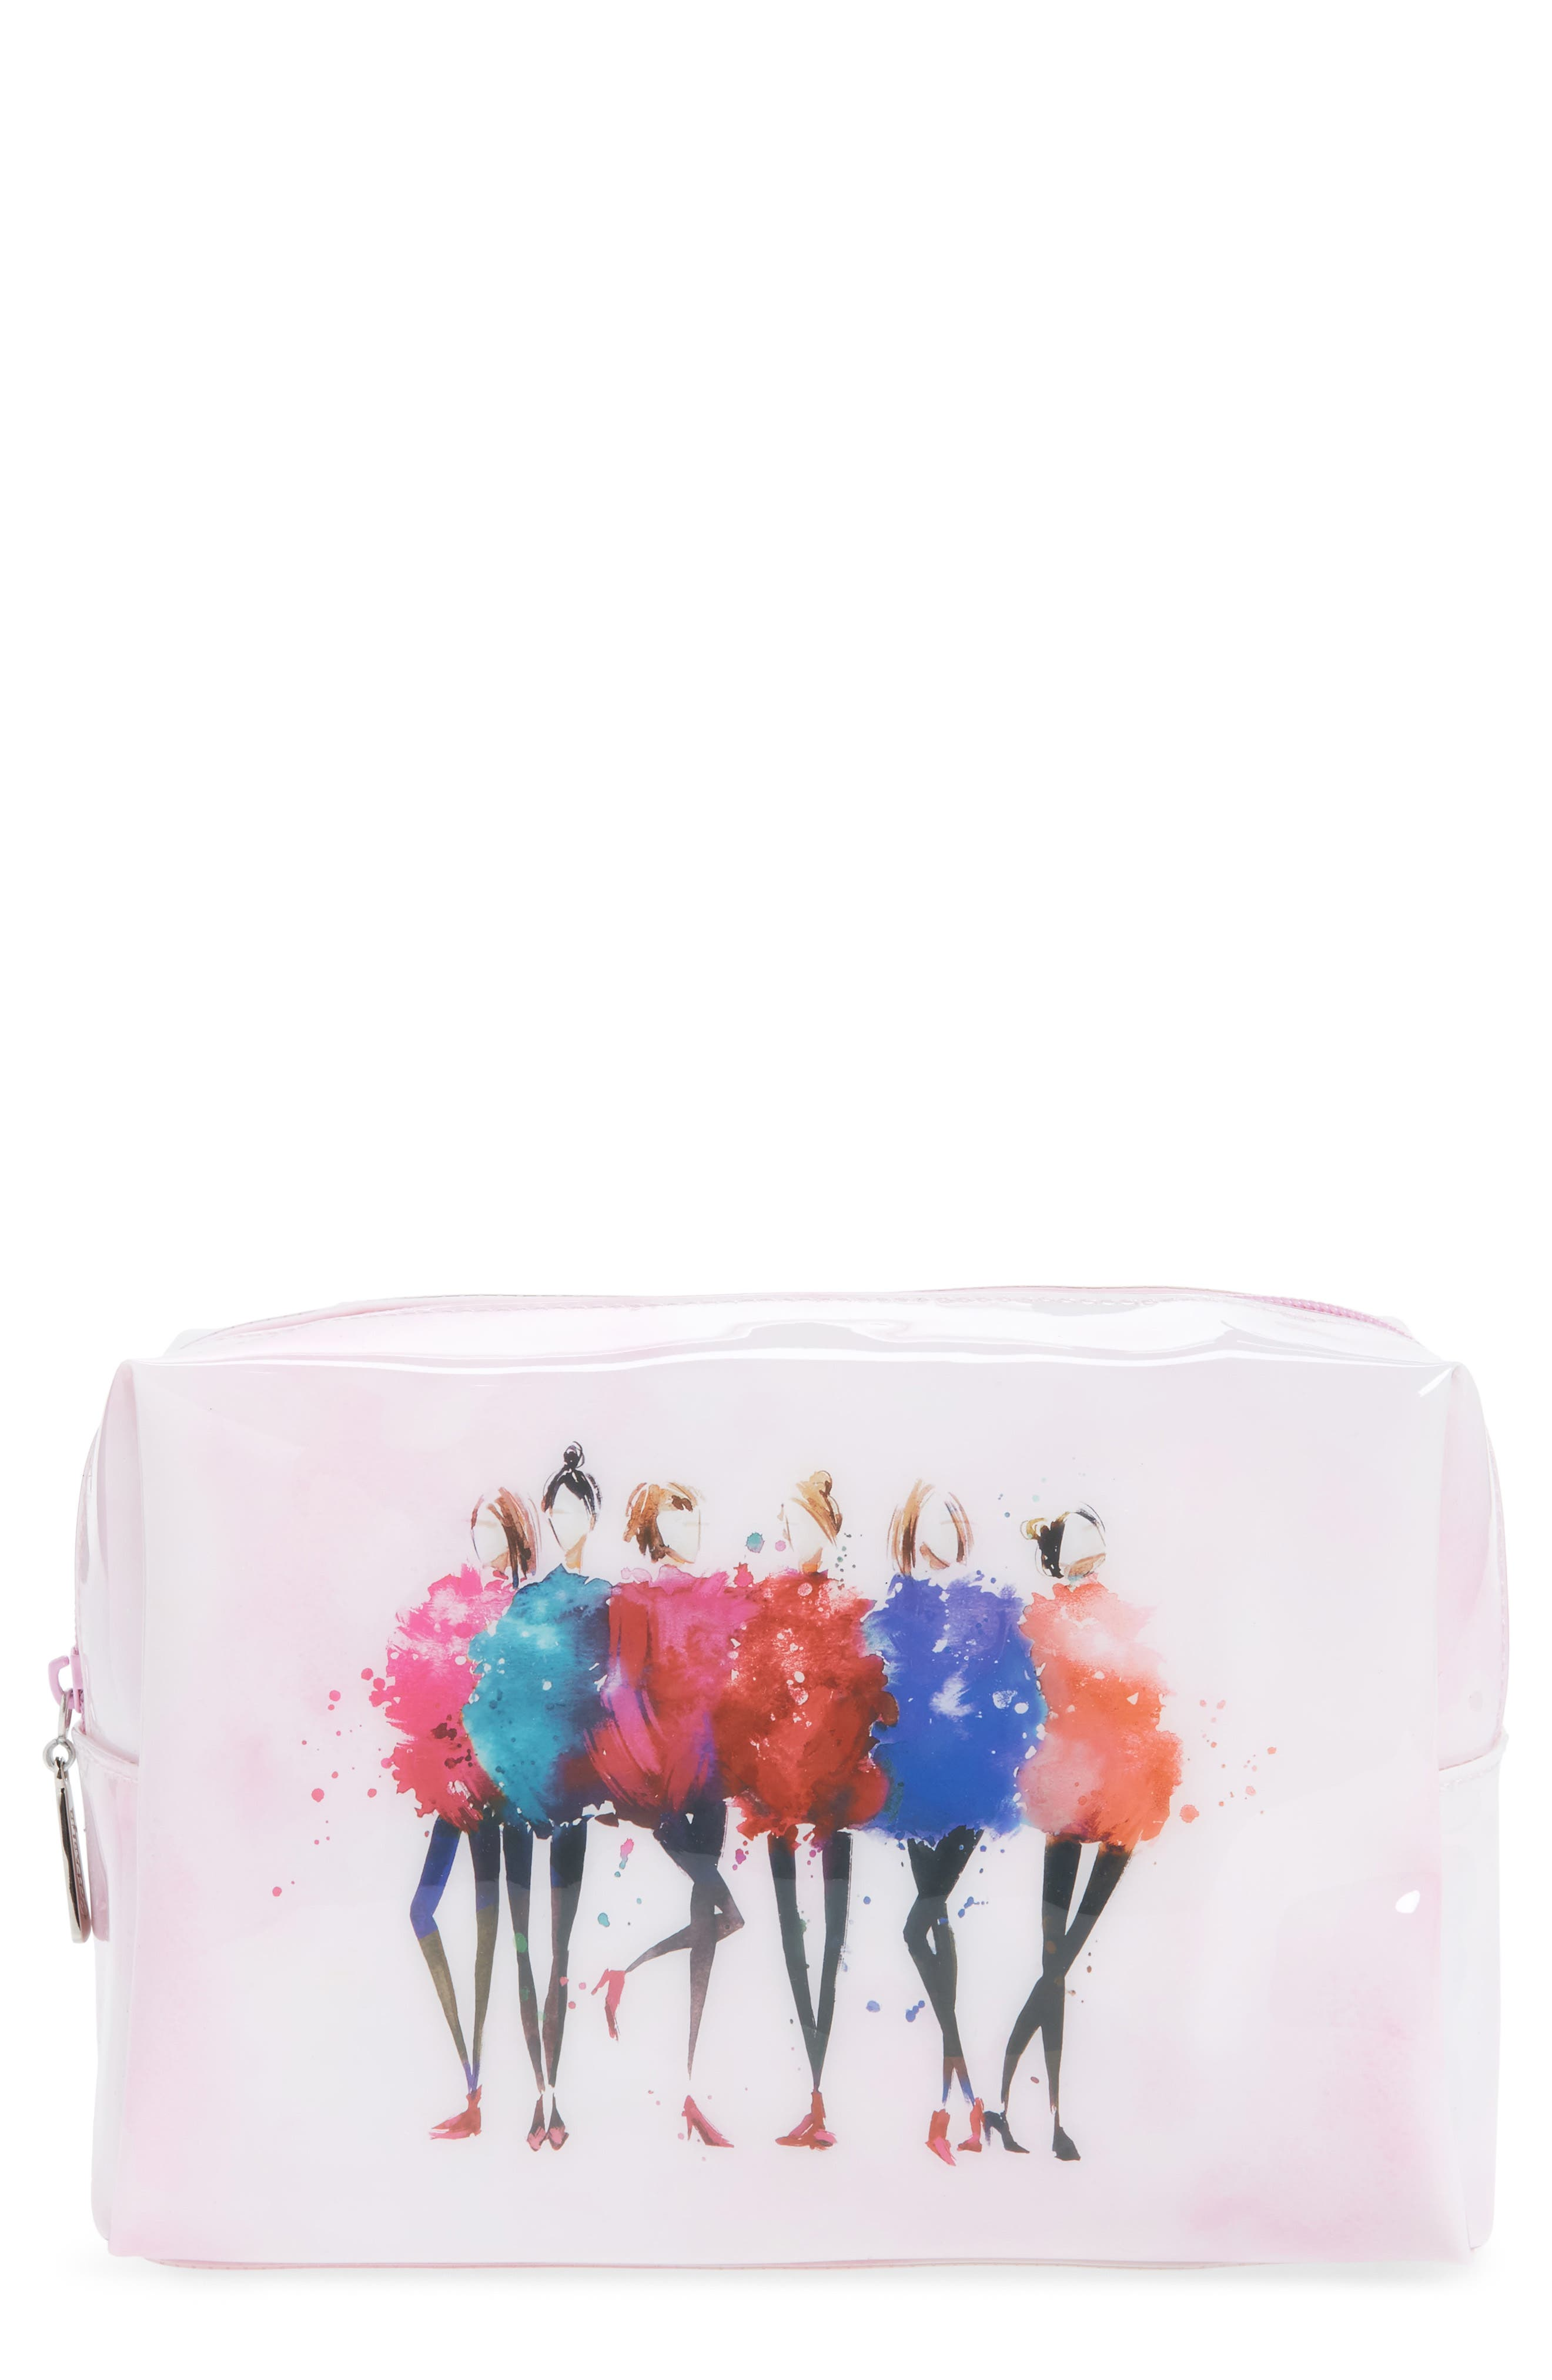 Watercolor Women Large Cosmetics Case,                         Main,                         color, Pink